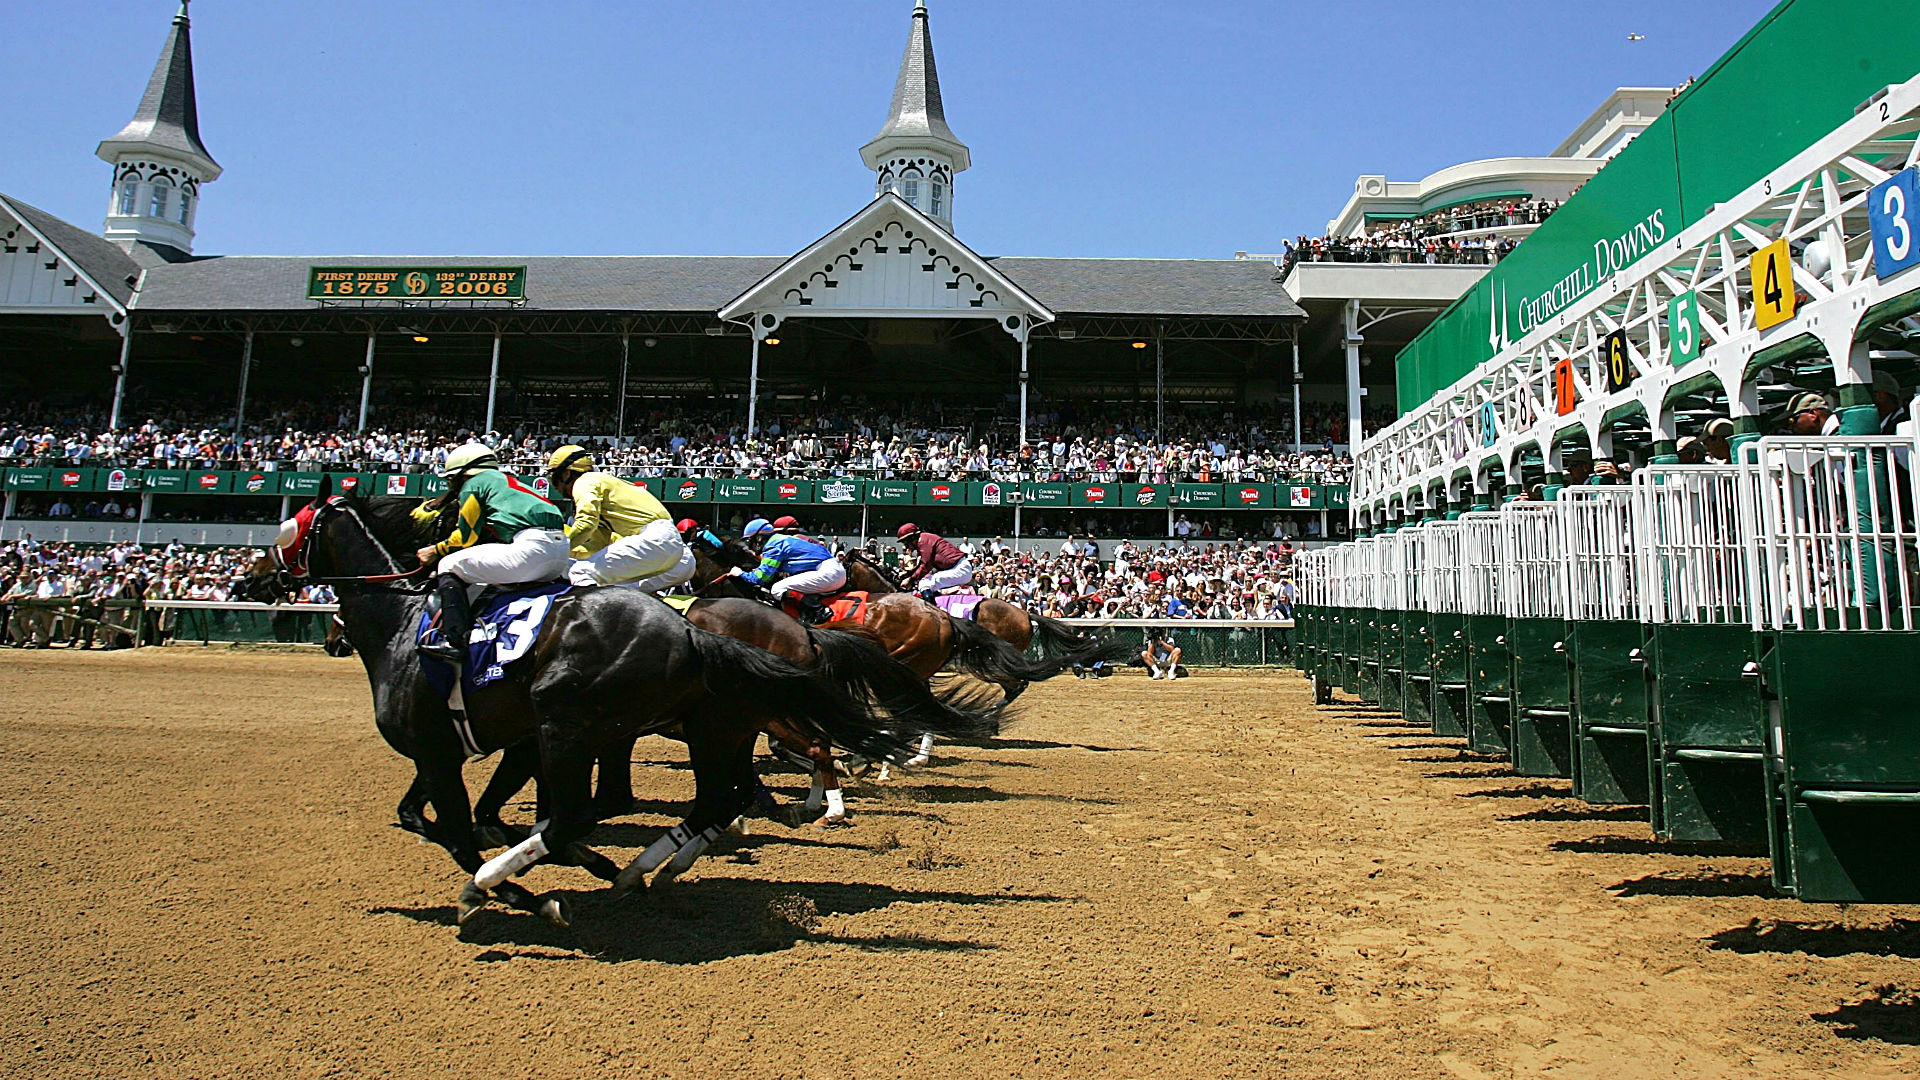 Biggest Longshots To Beat The Odds And Win The Kentucky